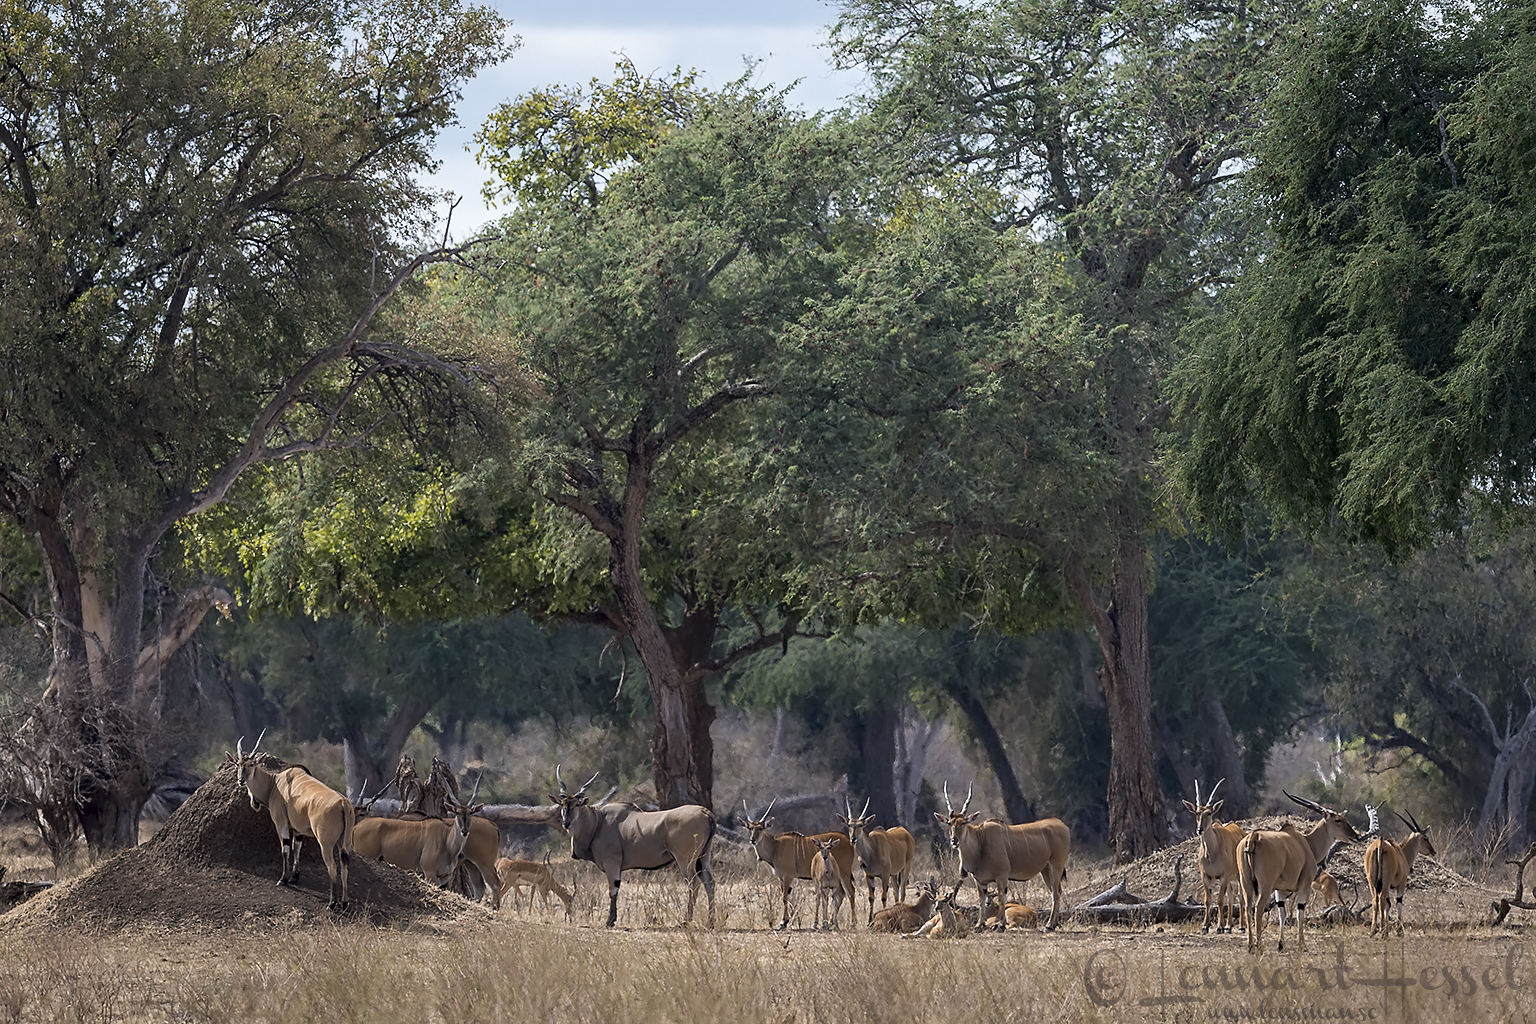 Eland herd Mana Pools National Park Zimbabwe